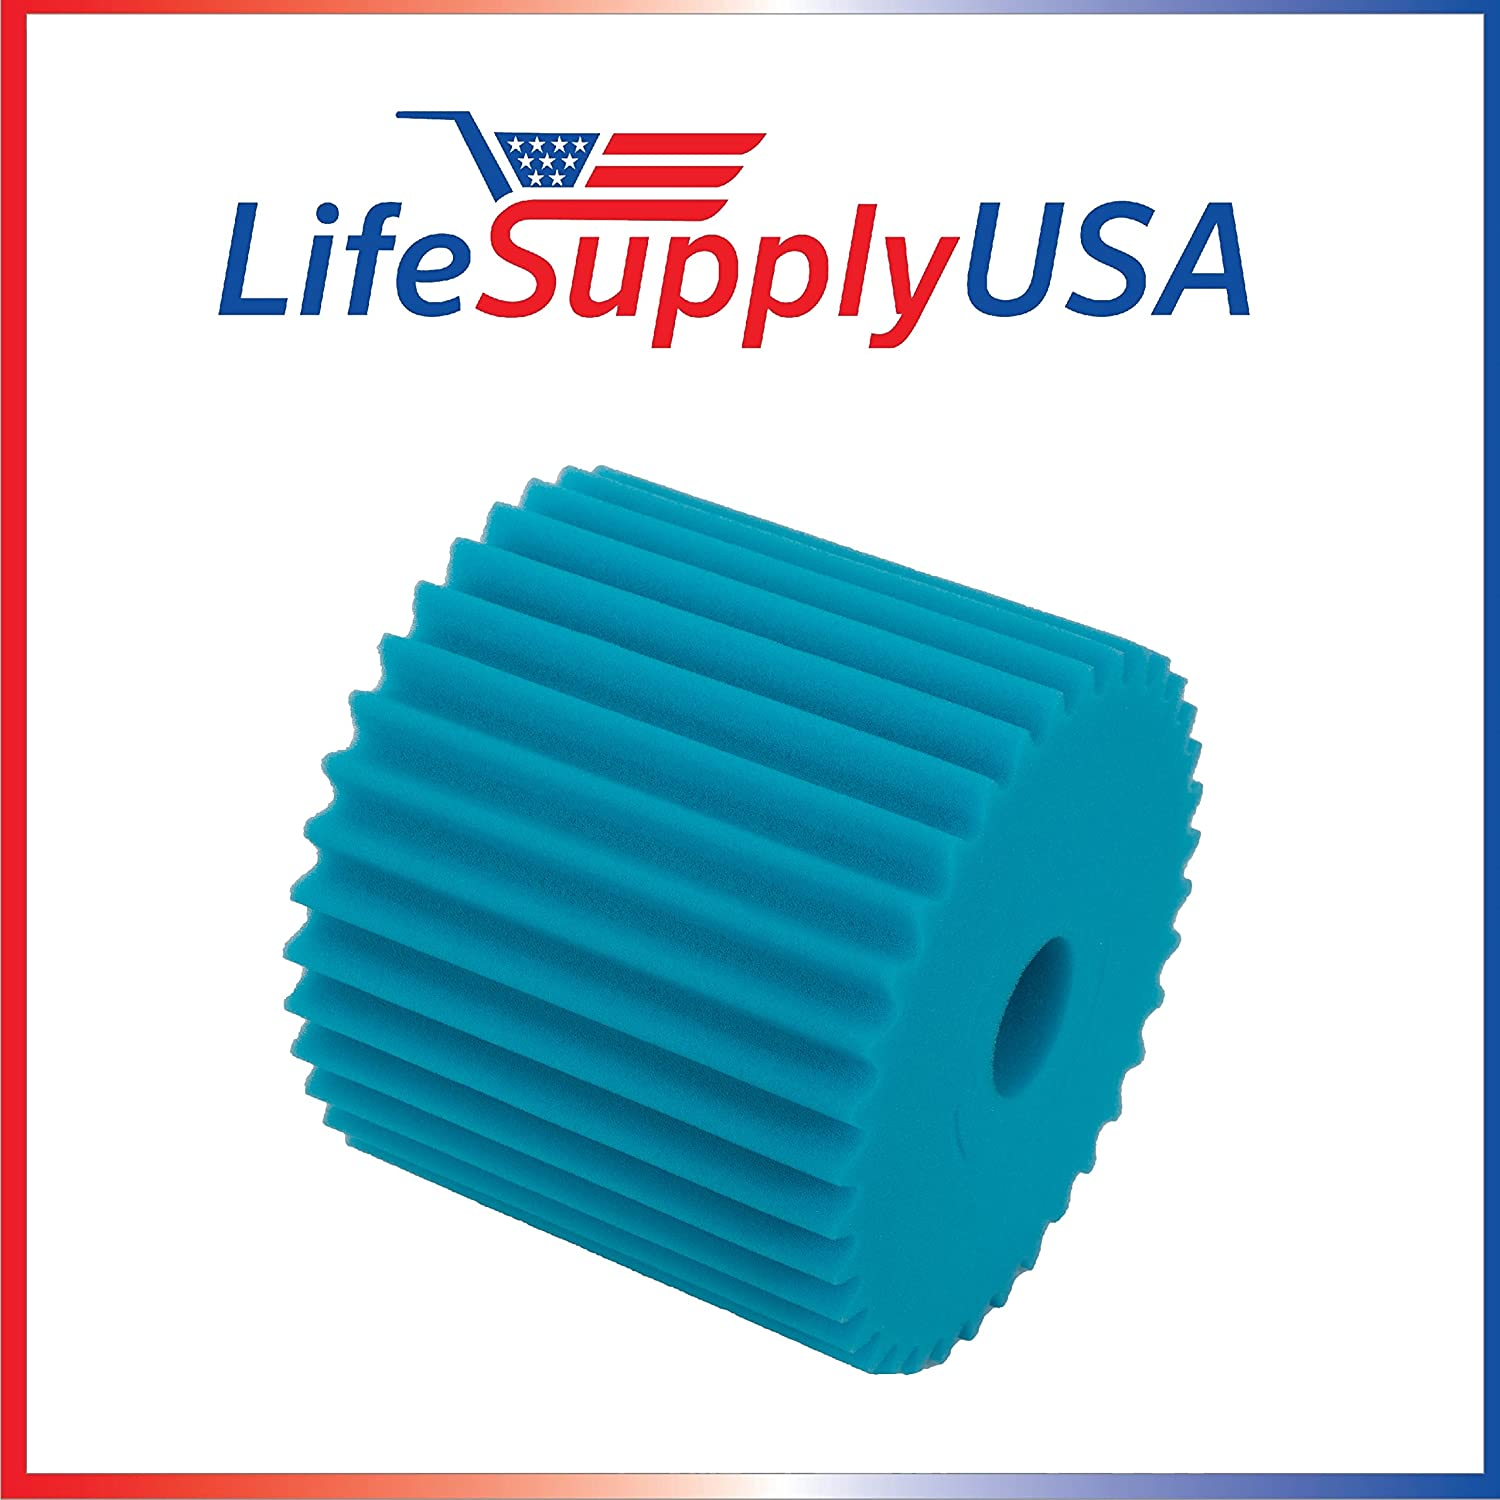 Central Vacuum Foam Filter Replacement filter for Electrolux Centralux Blue by LifeSupplyUSA